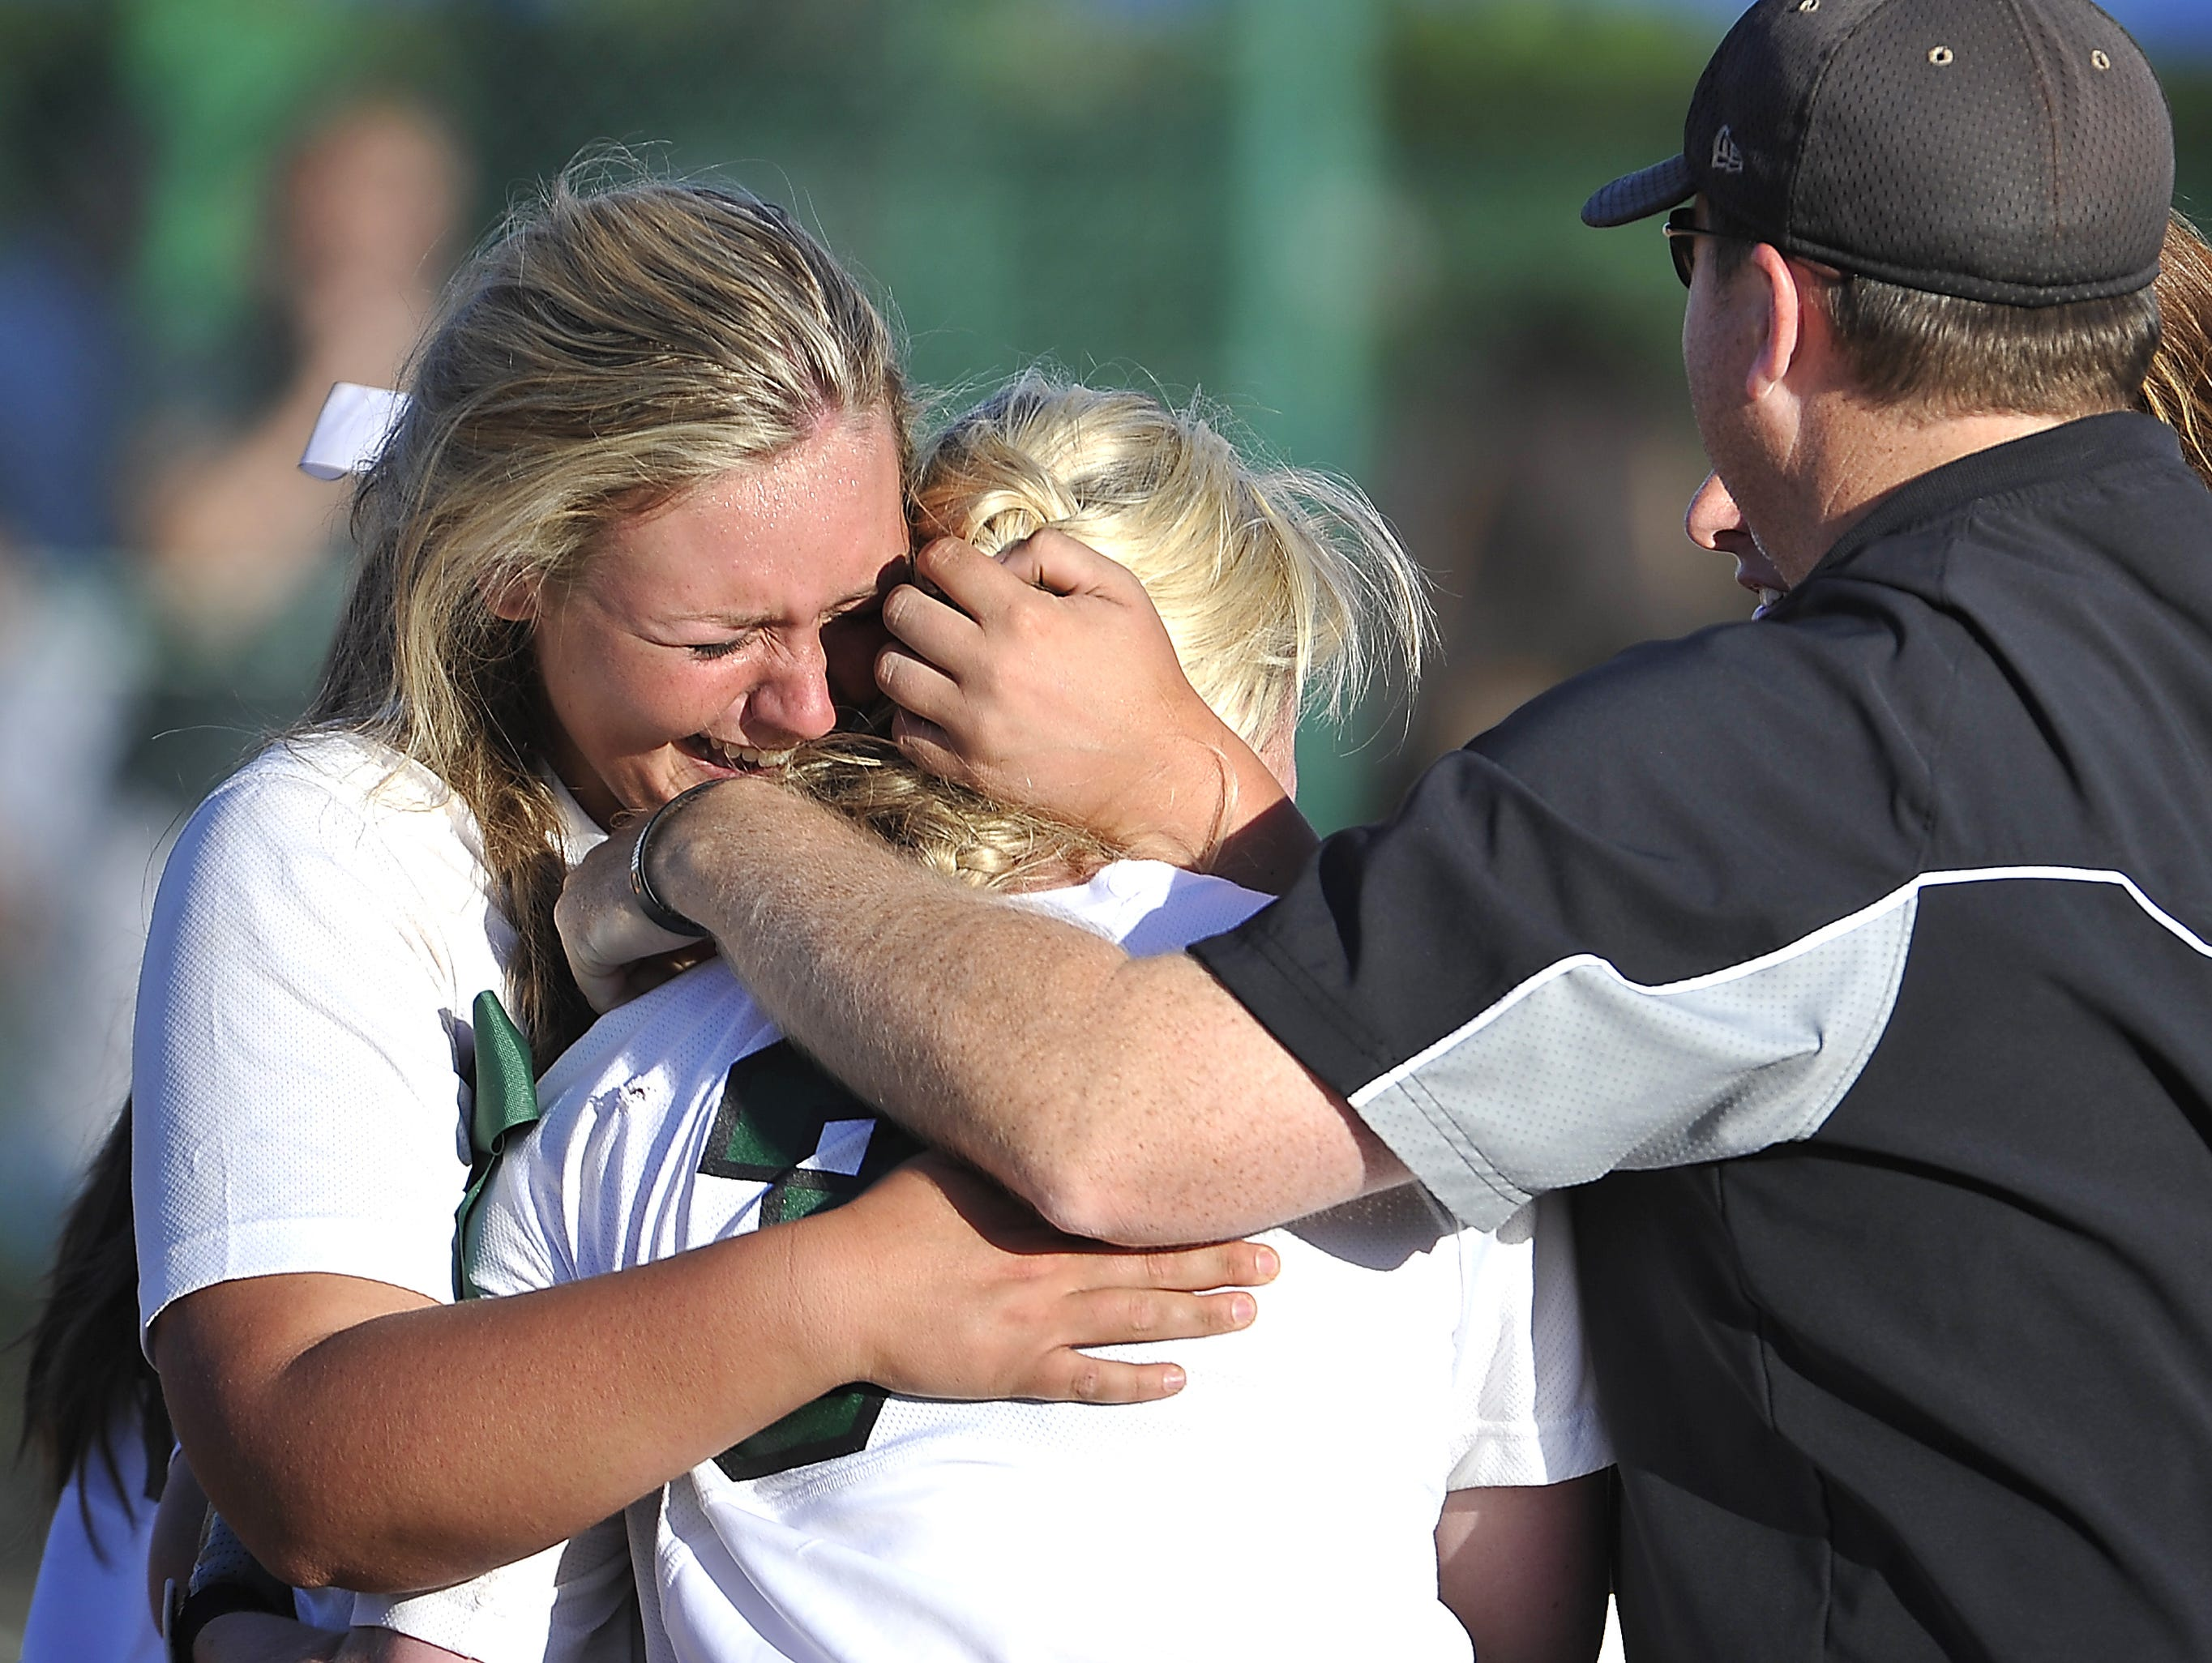 Courtney Miles and Jordan Burton embrace after winning the 2015 Division II-A championship.